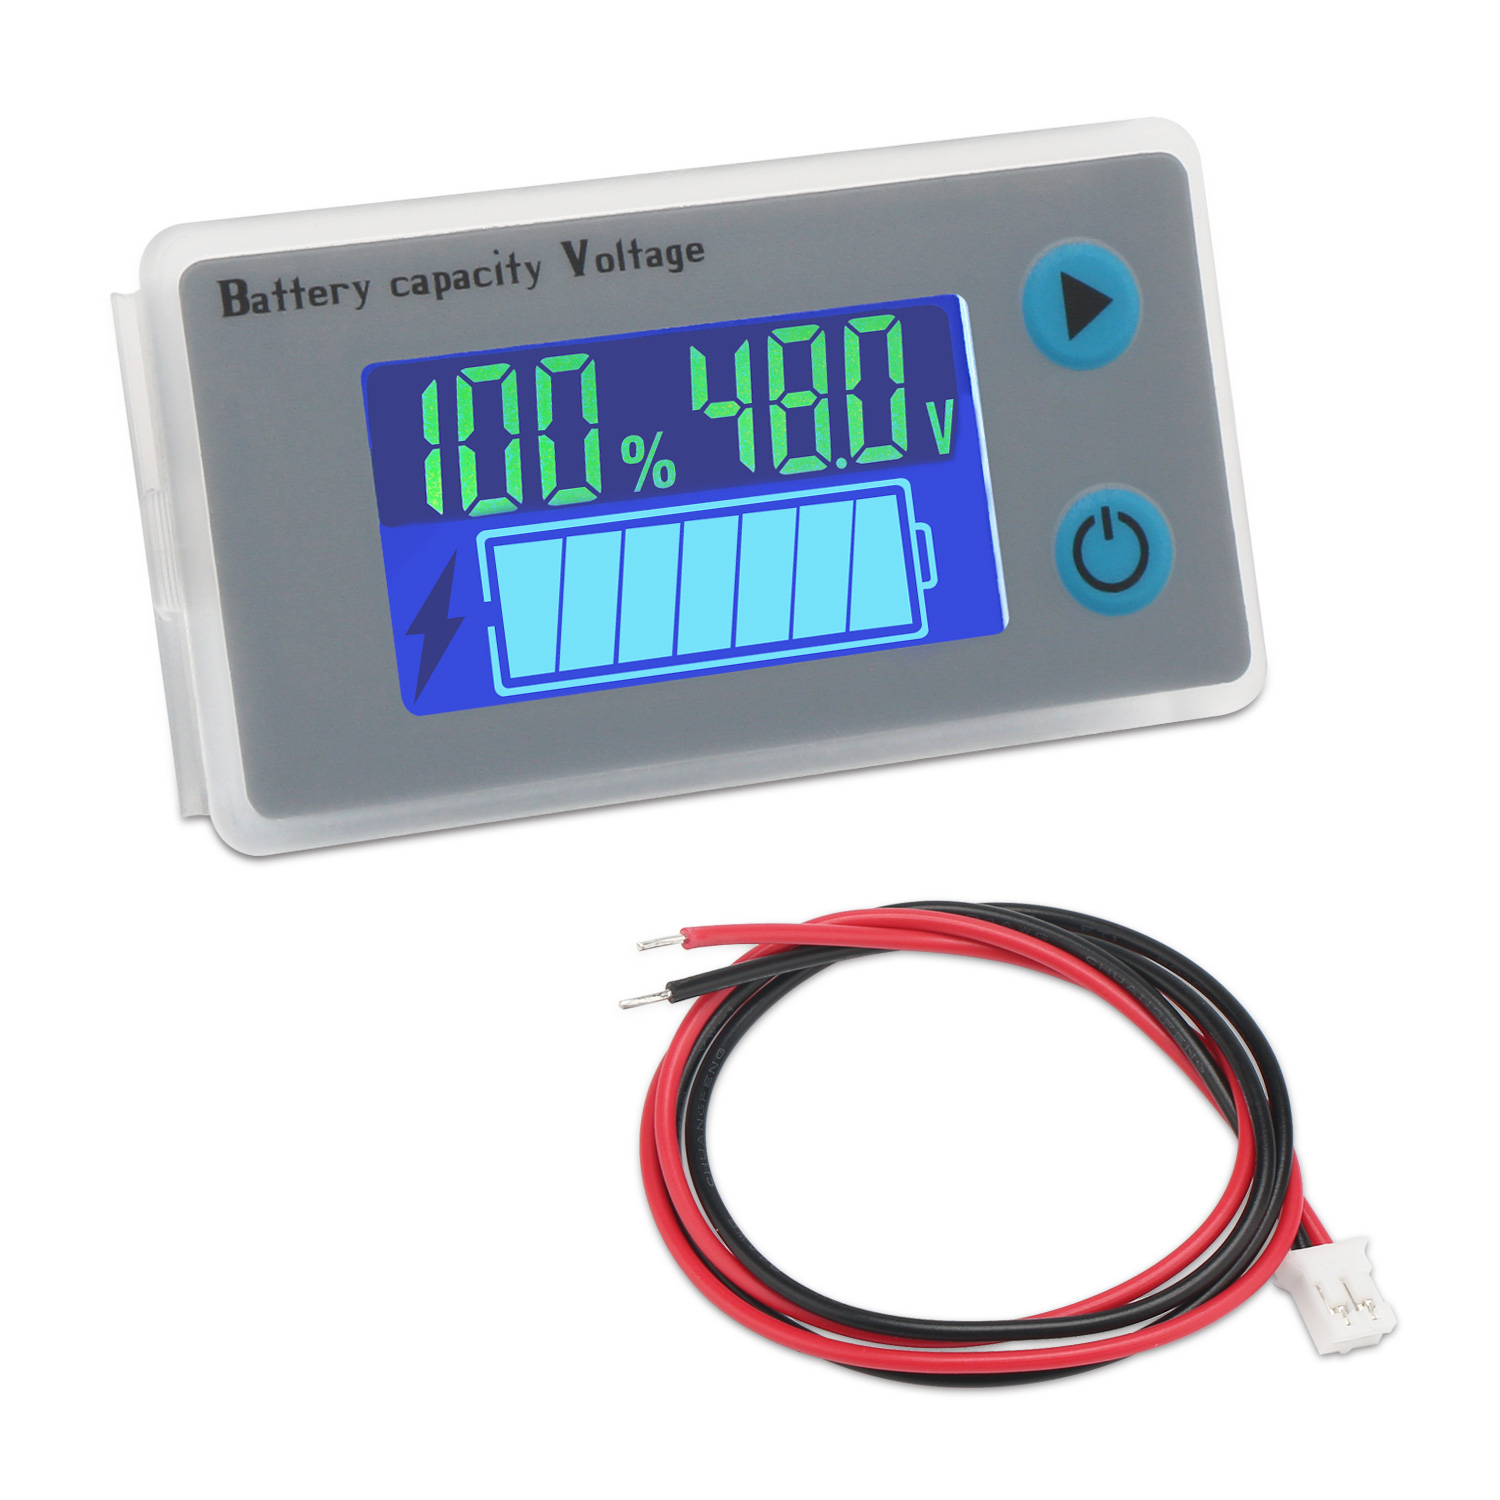 Vert Droking 0,36 Mini Portable Electronique Num/érique Thermom/ètre Indicateur Temperature Meter DS18b20-55 /à 125 ℃ Thermom/ètre Gauge Reader with Probe Sensor Sonde